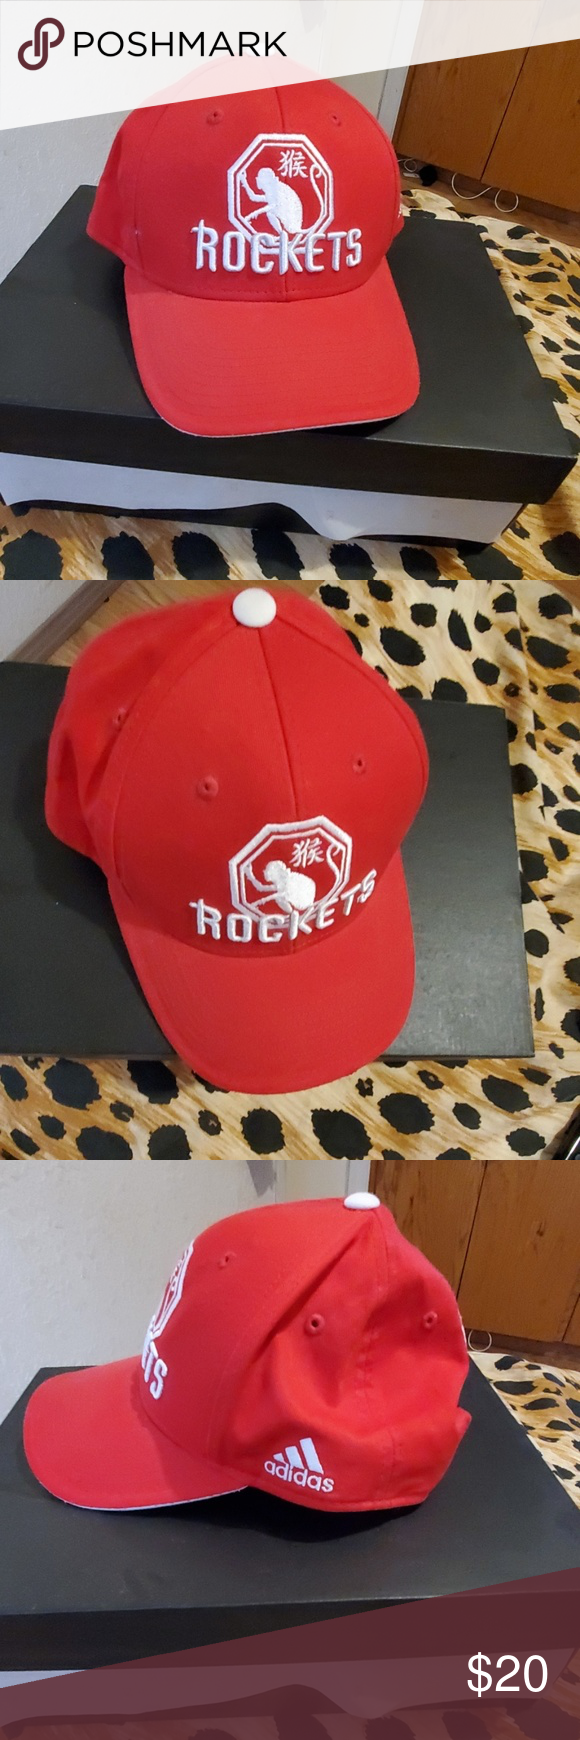 Houston Rockets Nba Chinese Year Of The Monkey Hat New With Tags Sold Out On Ebay Nba Store And Amazon Money In The From By The Houston Rockets Spellout And C